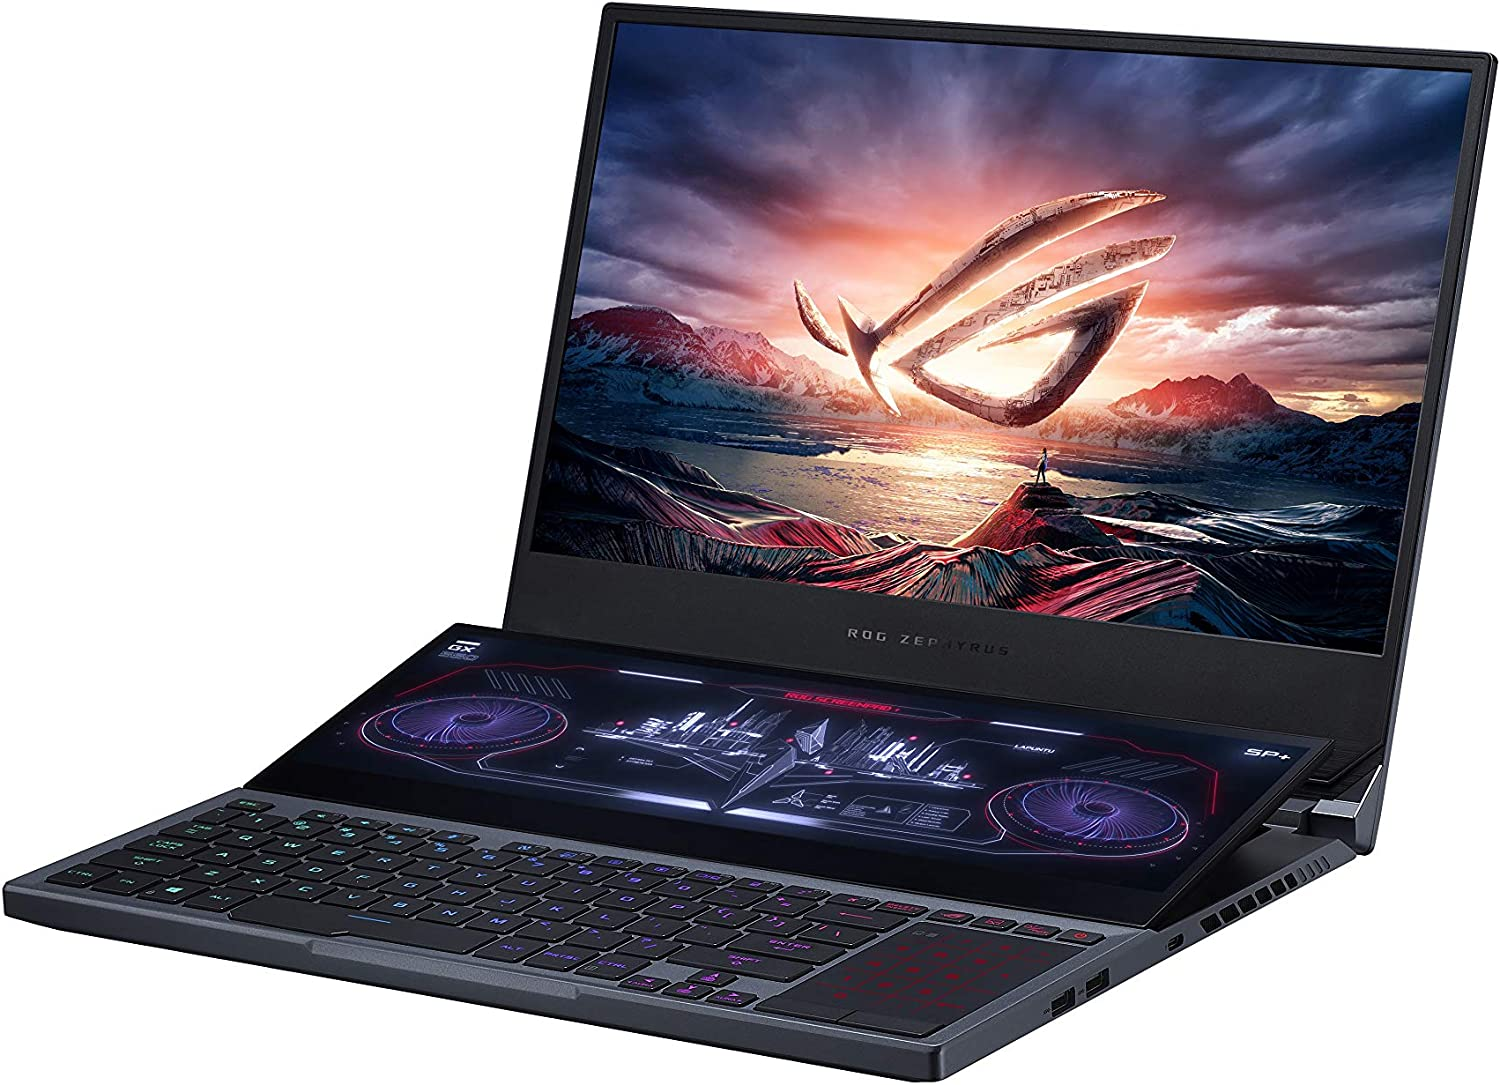 "ASUS ROG Zephyrus Duo 15 Gaming Laptop, 15.6"" 300Hz IPS Type FHD, NVIDIA GeForce RTX 2070S, Intel Core i7-10875H, 32GB DDR4, 2TB RAID 0 SSD, Per-Key RGB, Thunderbolt 3, Windows 10, GX550LWS-XS79"